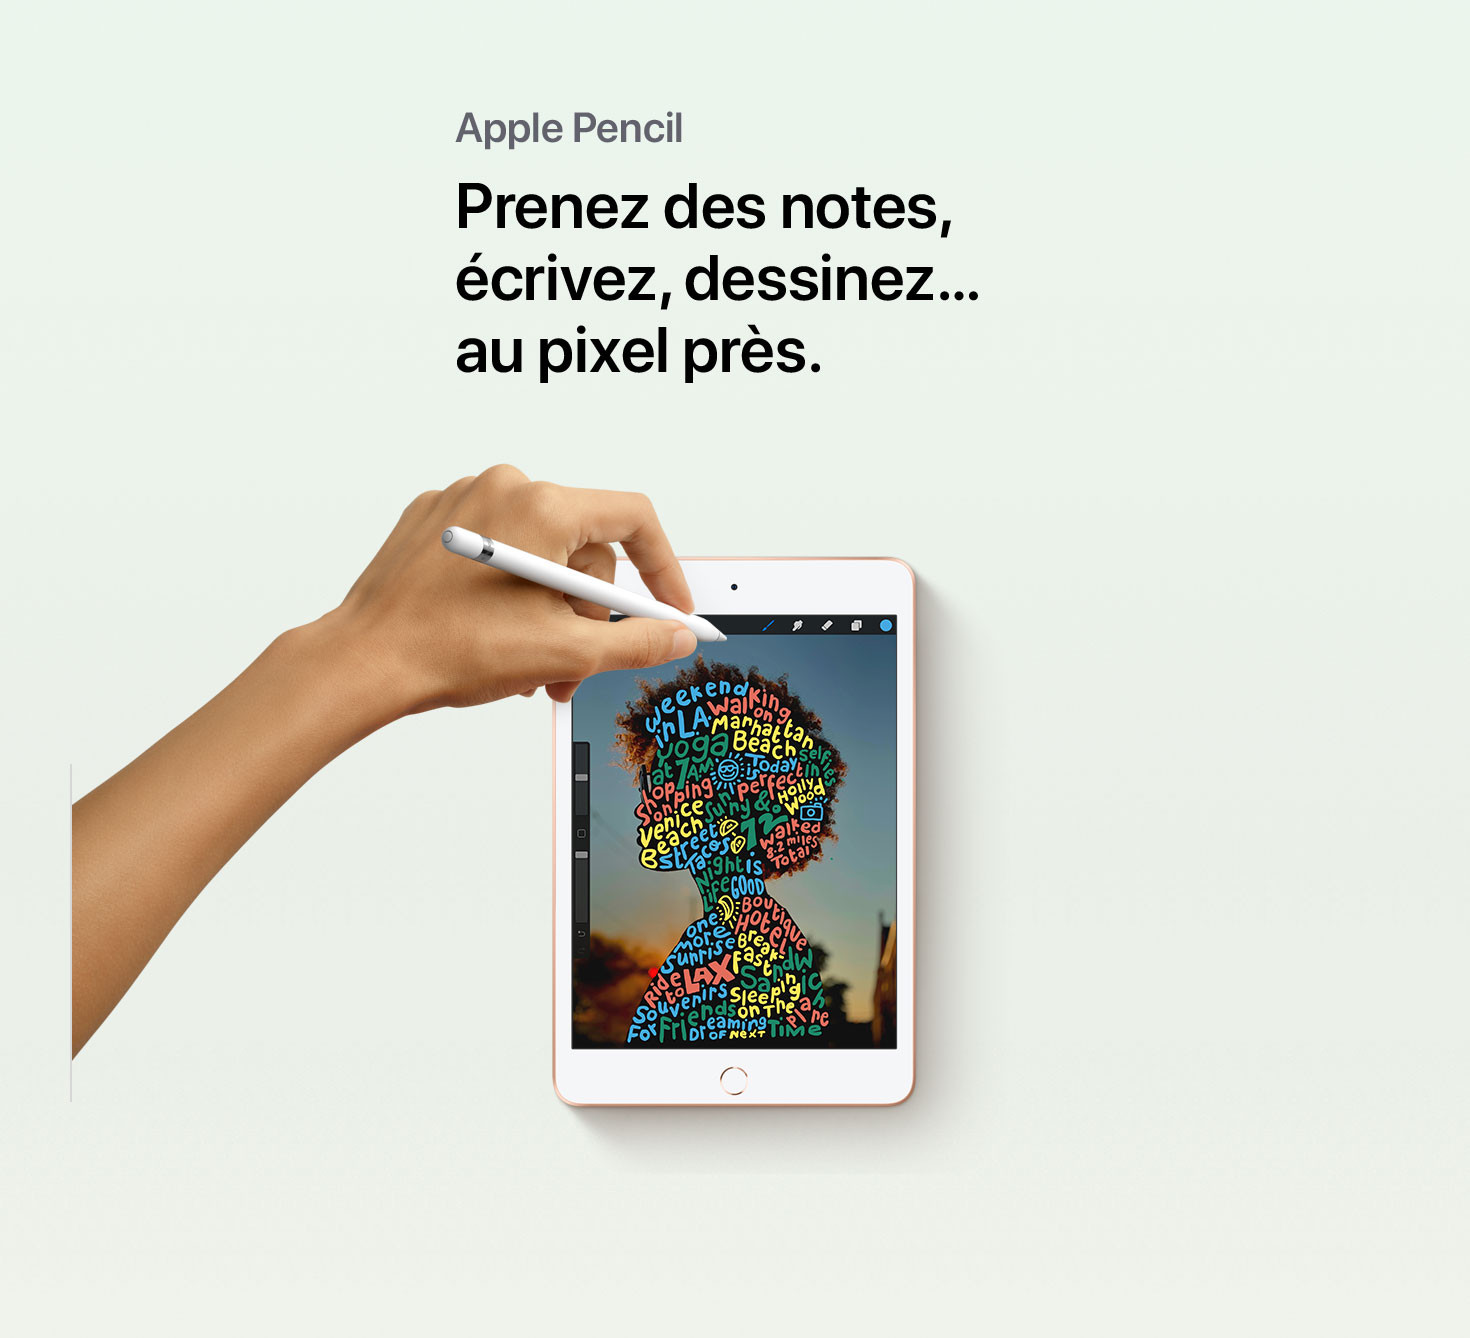 Productpage---iPad-Mini-2019-fr-mobile_08.jpg